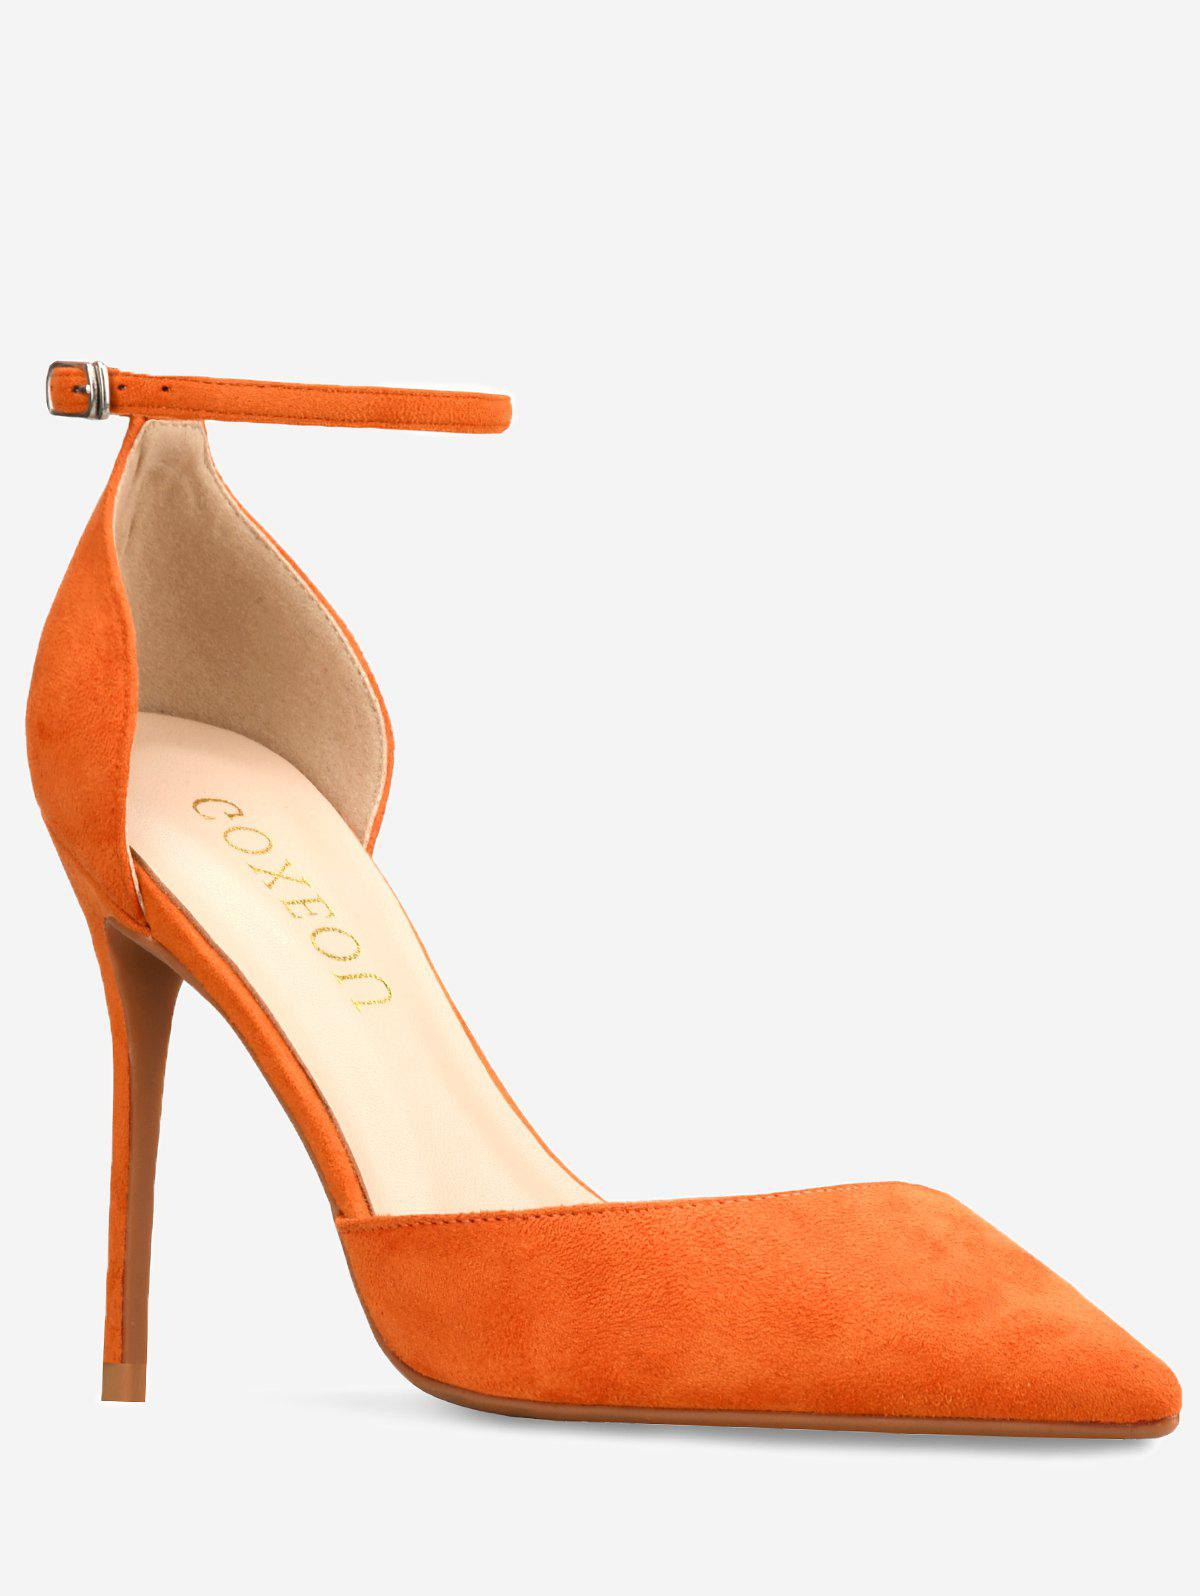 Fancy GOXEOU Ankle Strap High Heel Going Out Pumps